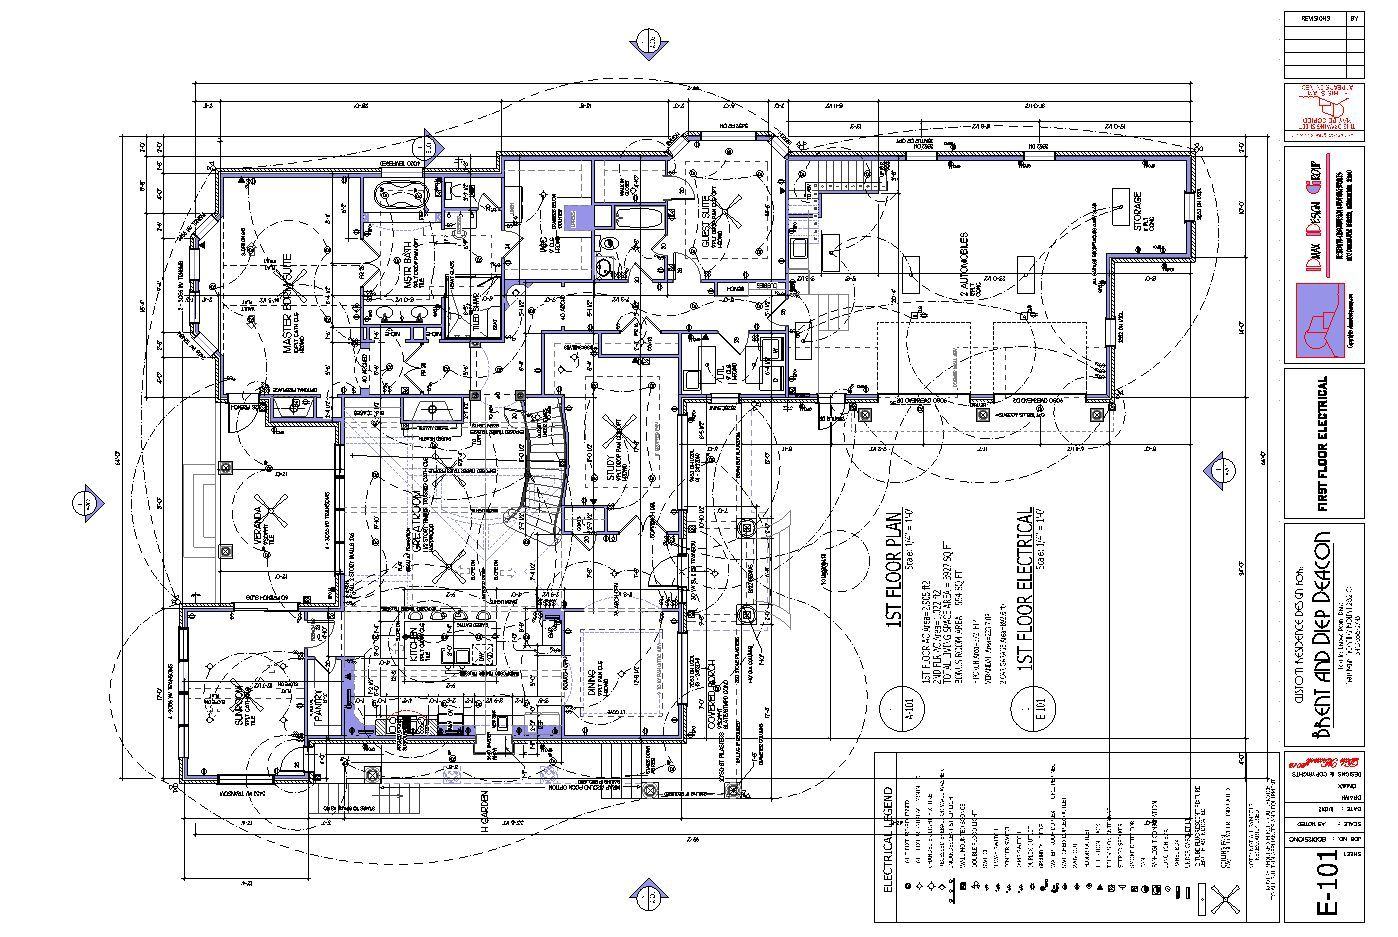 Electrical Drawings For Buildings – The Wiring Diagram ...